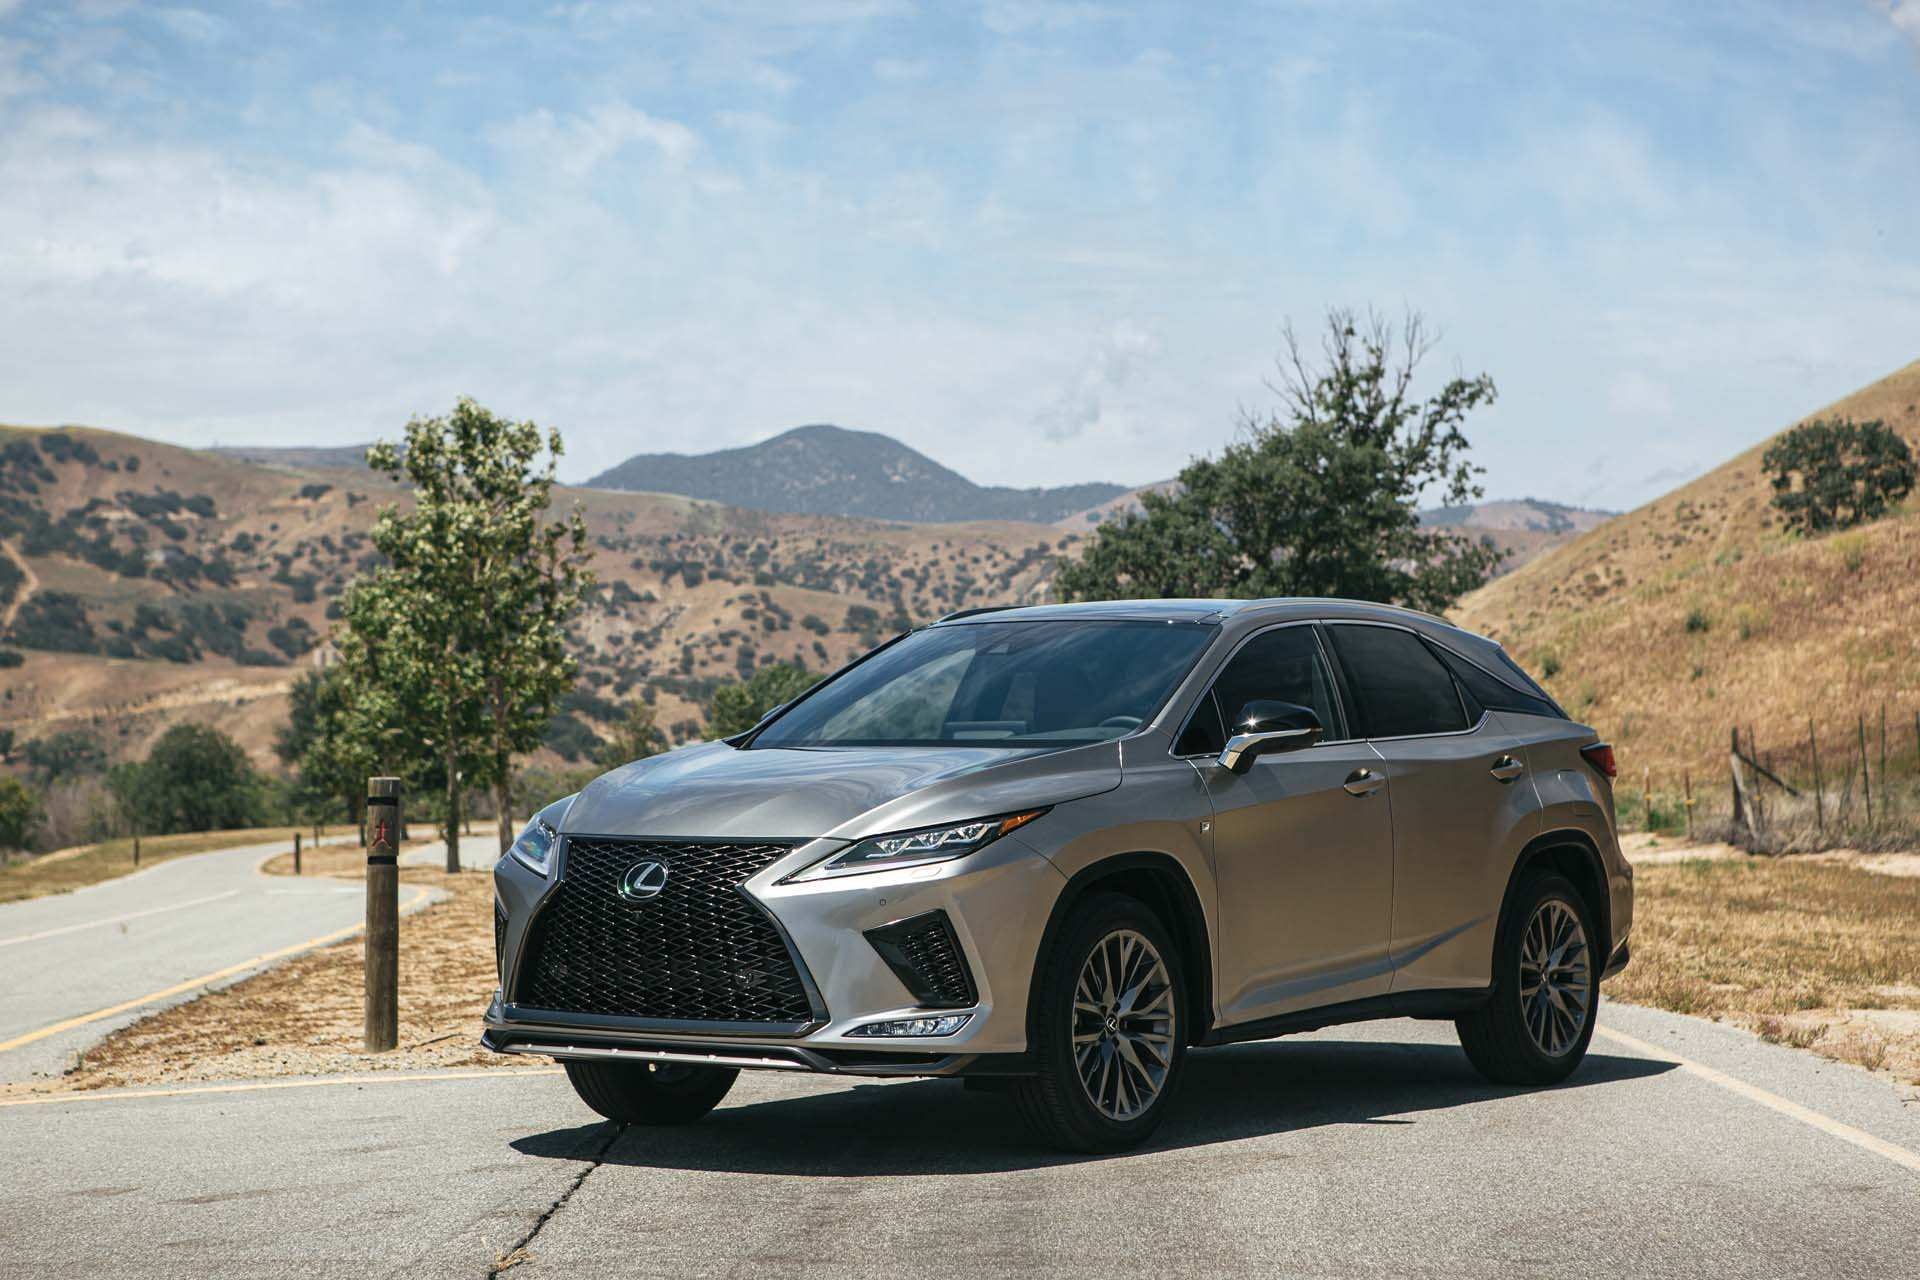 86 Best Review Pictures Of 2020 Lexus Speed Test by Pictures Of 2020 Lexus